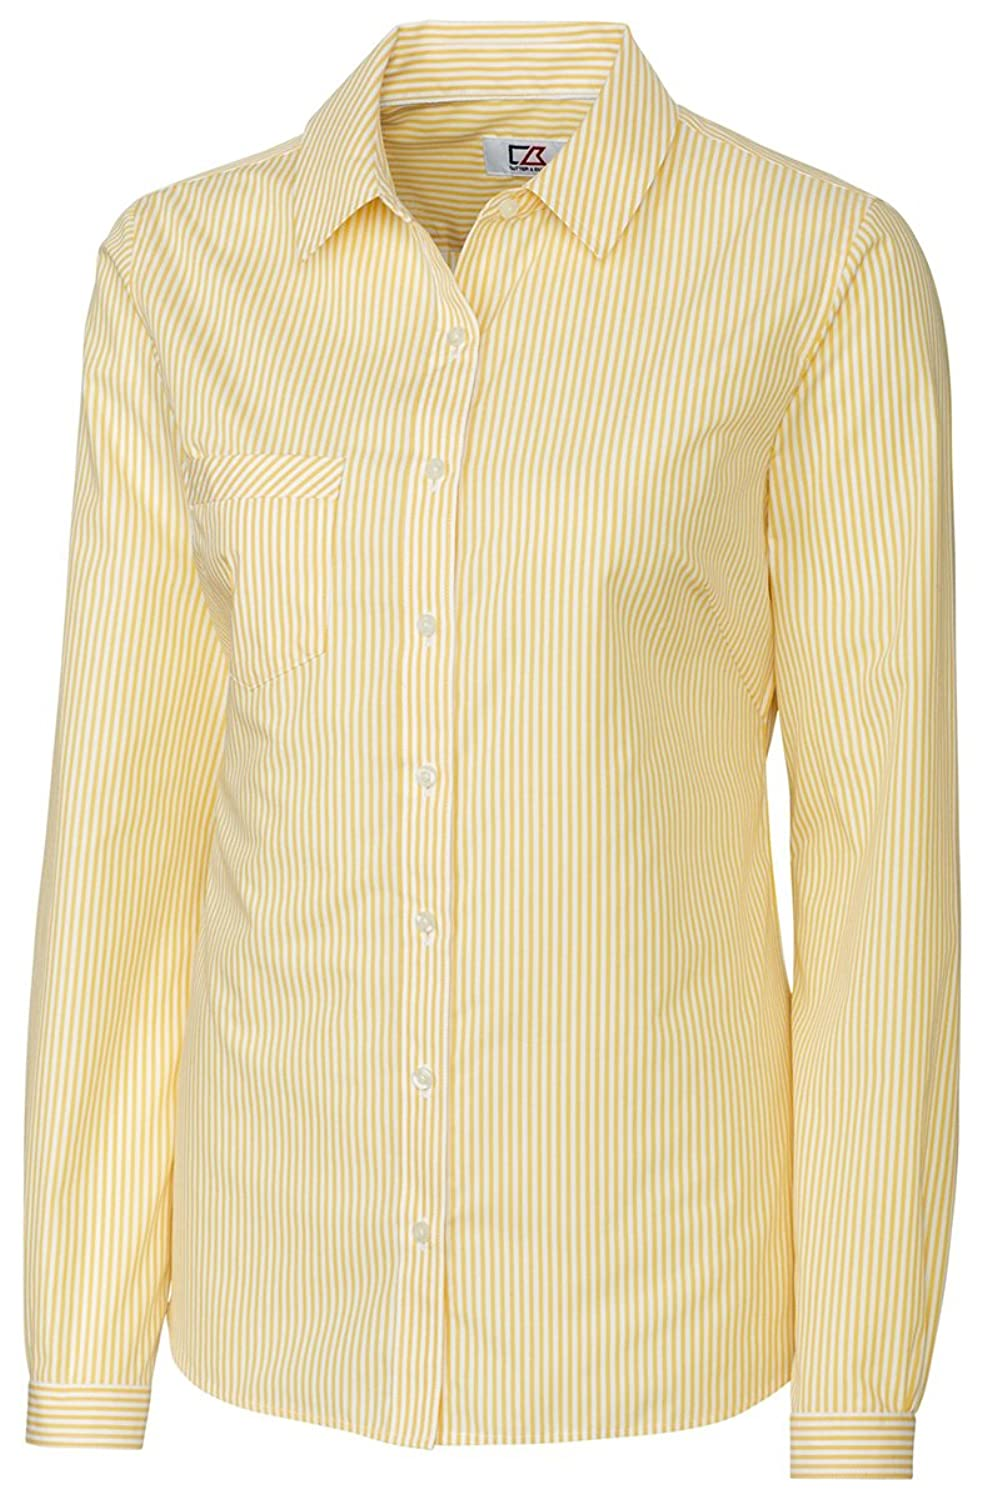 Cutter & Buck LCW04154 Womens L/S Epic Easy Care Mini Bengal Button Down Shirts